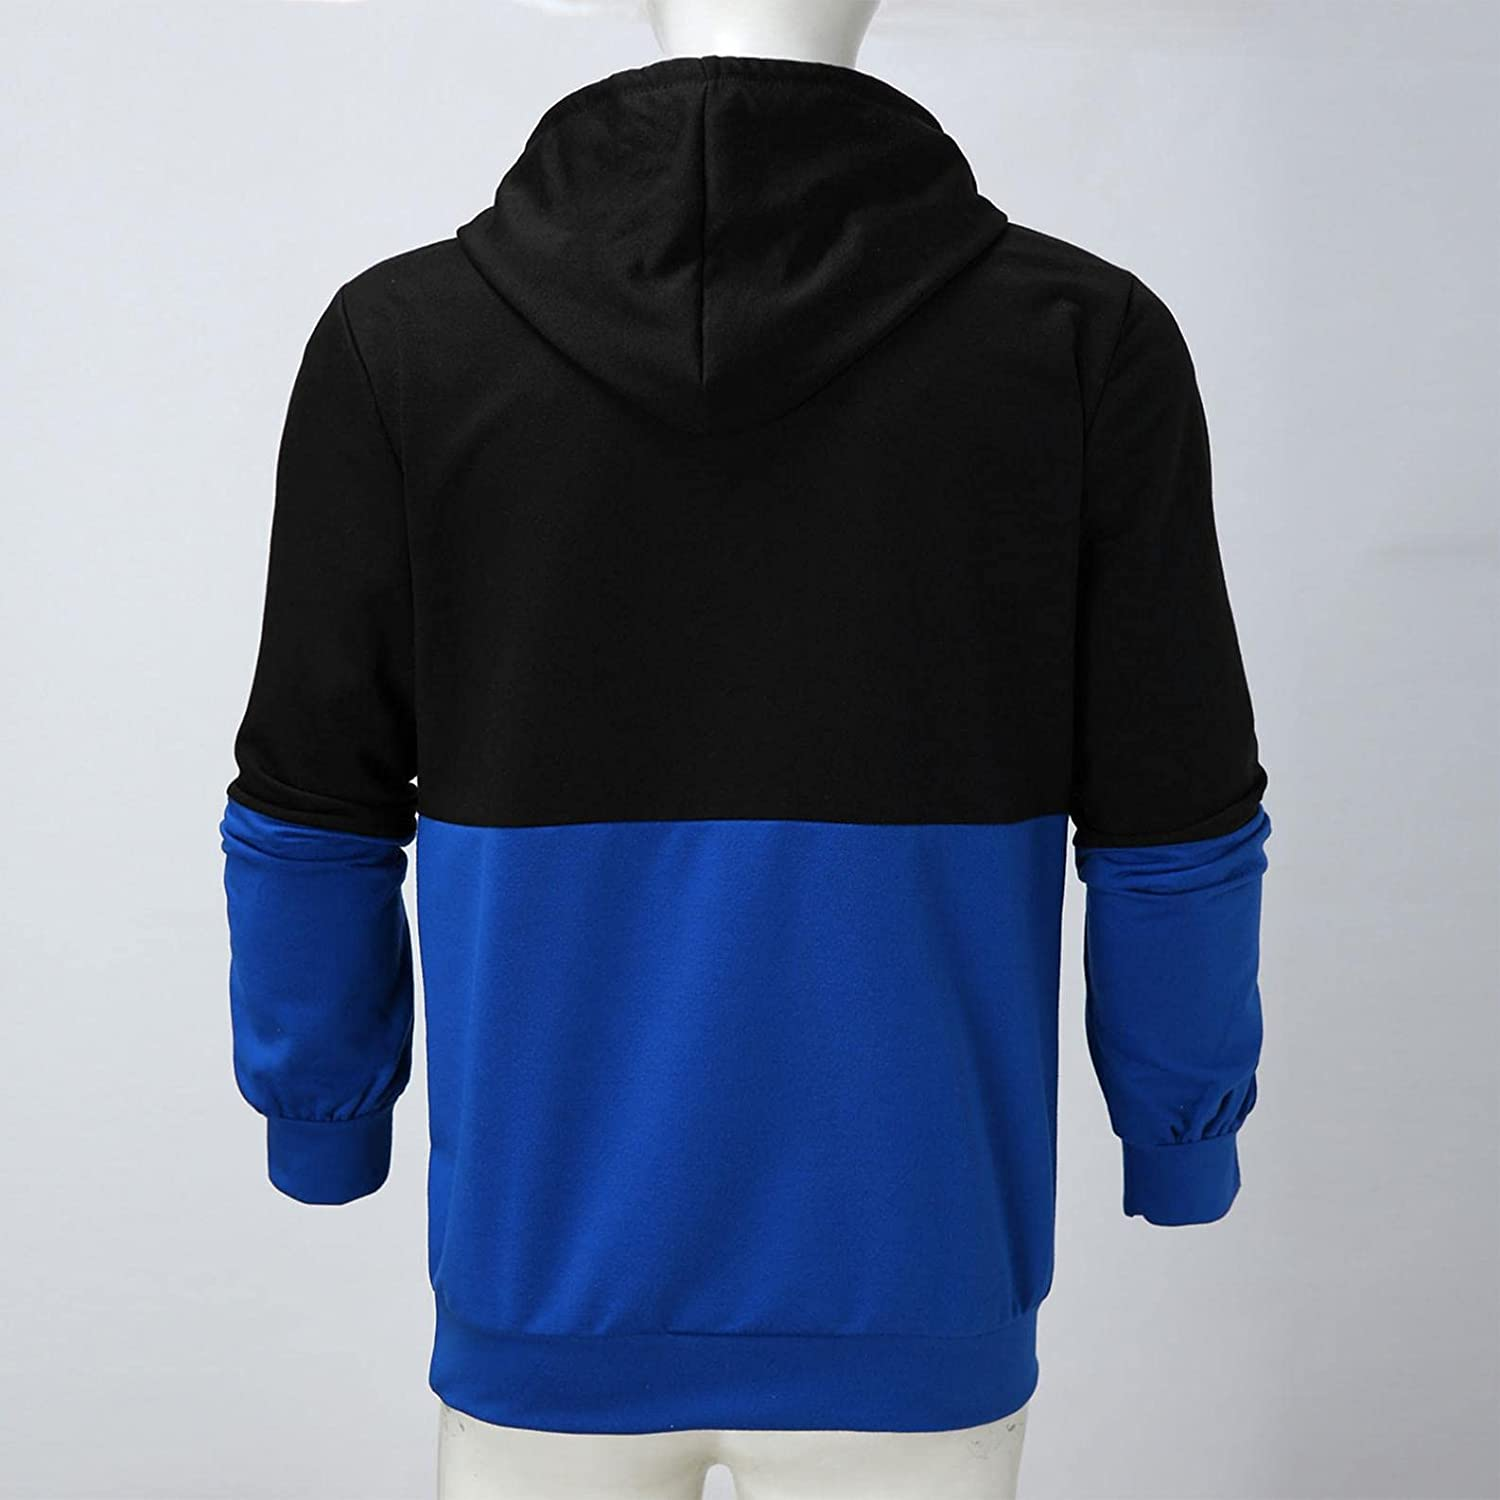 Hoodies for Men Fashion Pullover Color Splice Warm T-Shirts Patchwork Quick Dry Blend Fleece Kanga Pocket Mens Hoodies